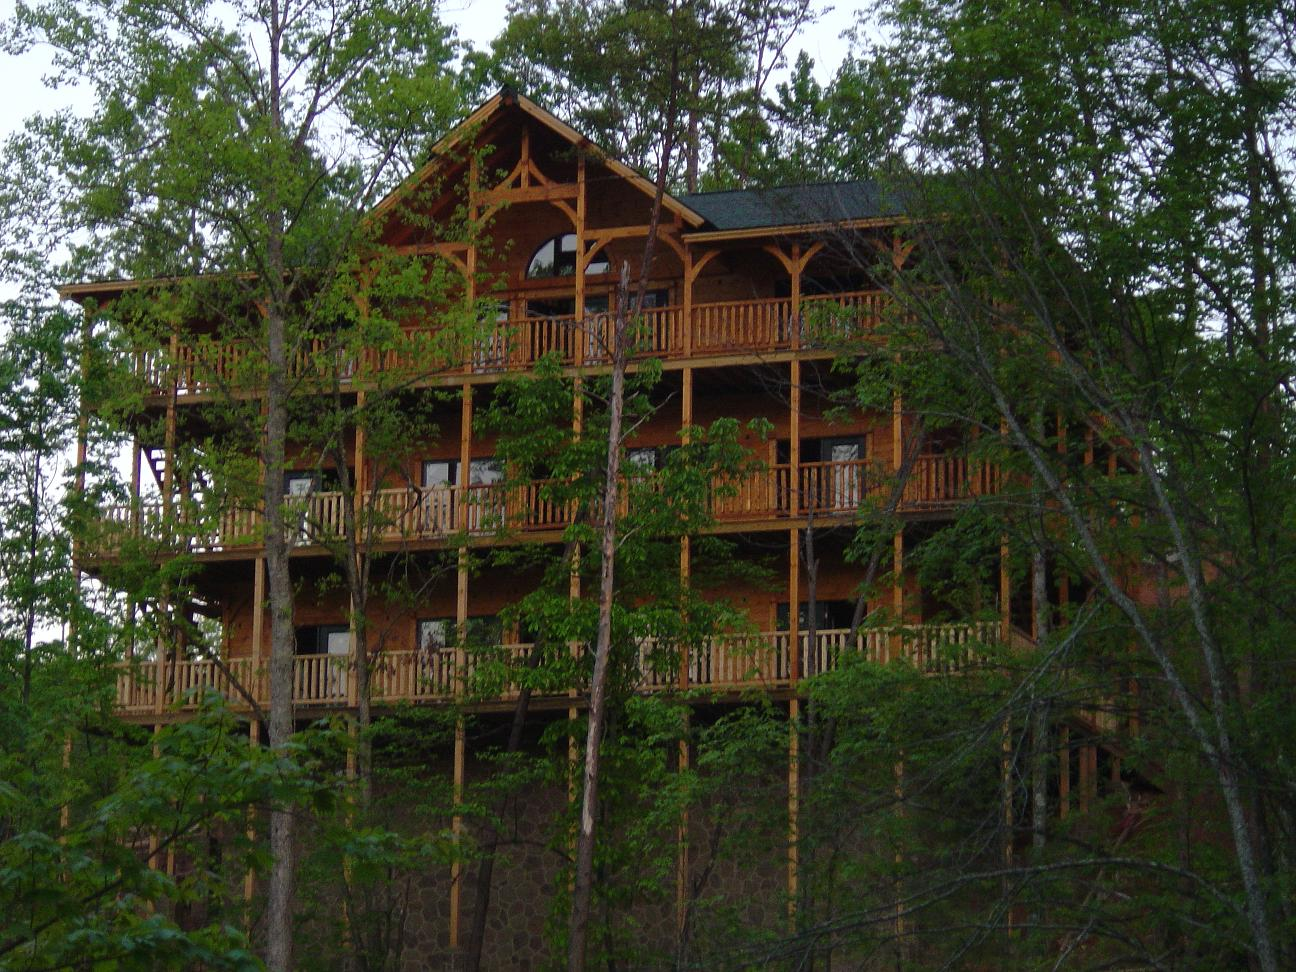 secluded pigeon in harbour nest honeymoon pet vacation rental friendly smoky cabin mountain forge mountains sky heaven tennessee s cabins